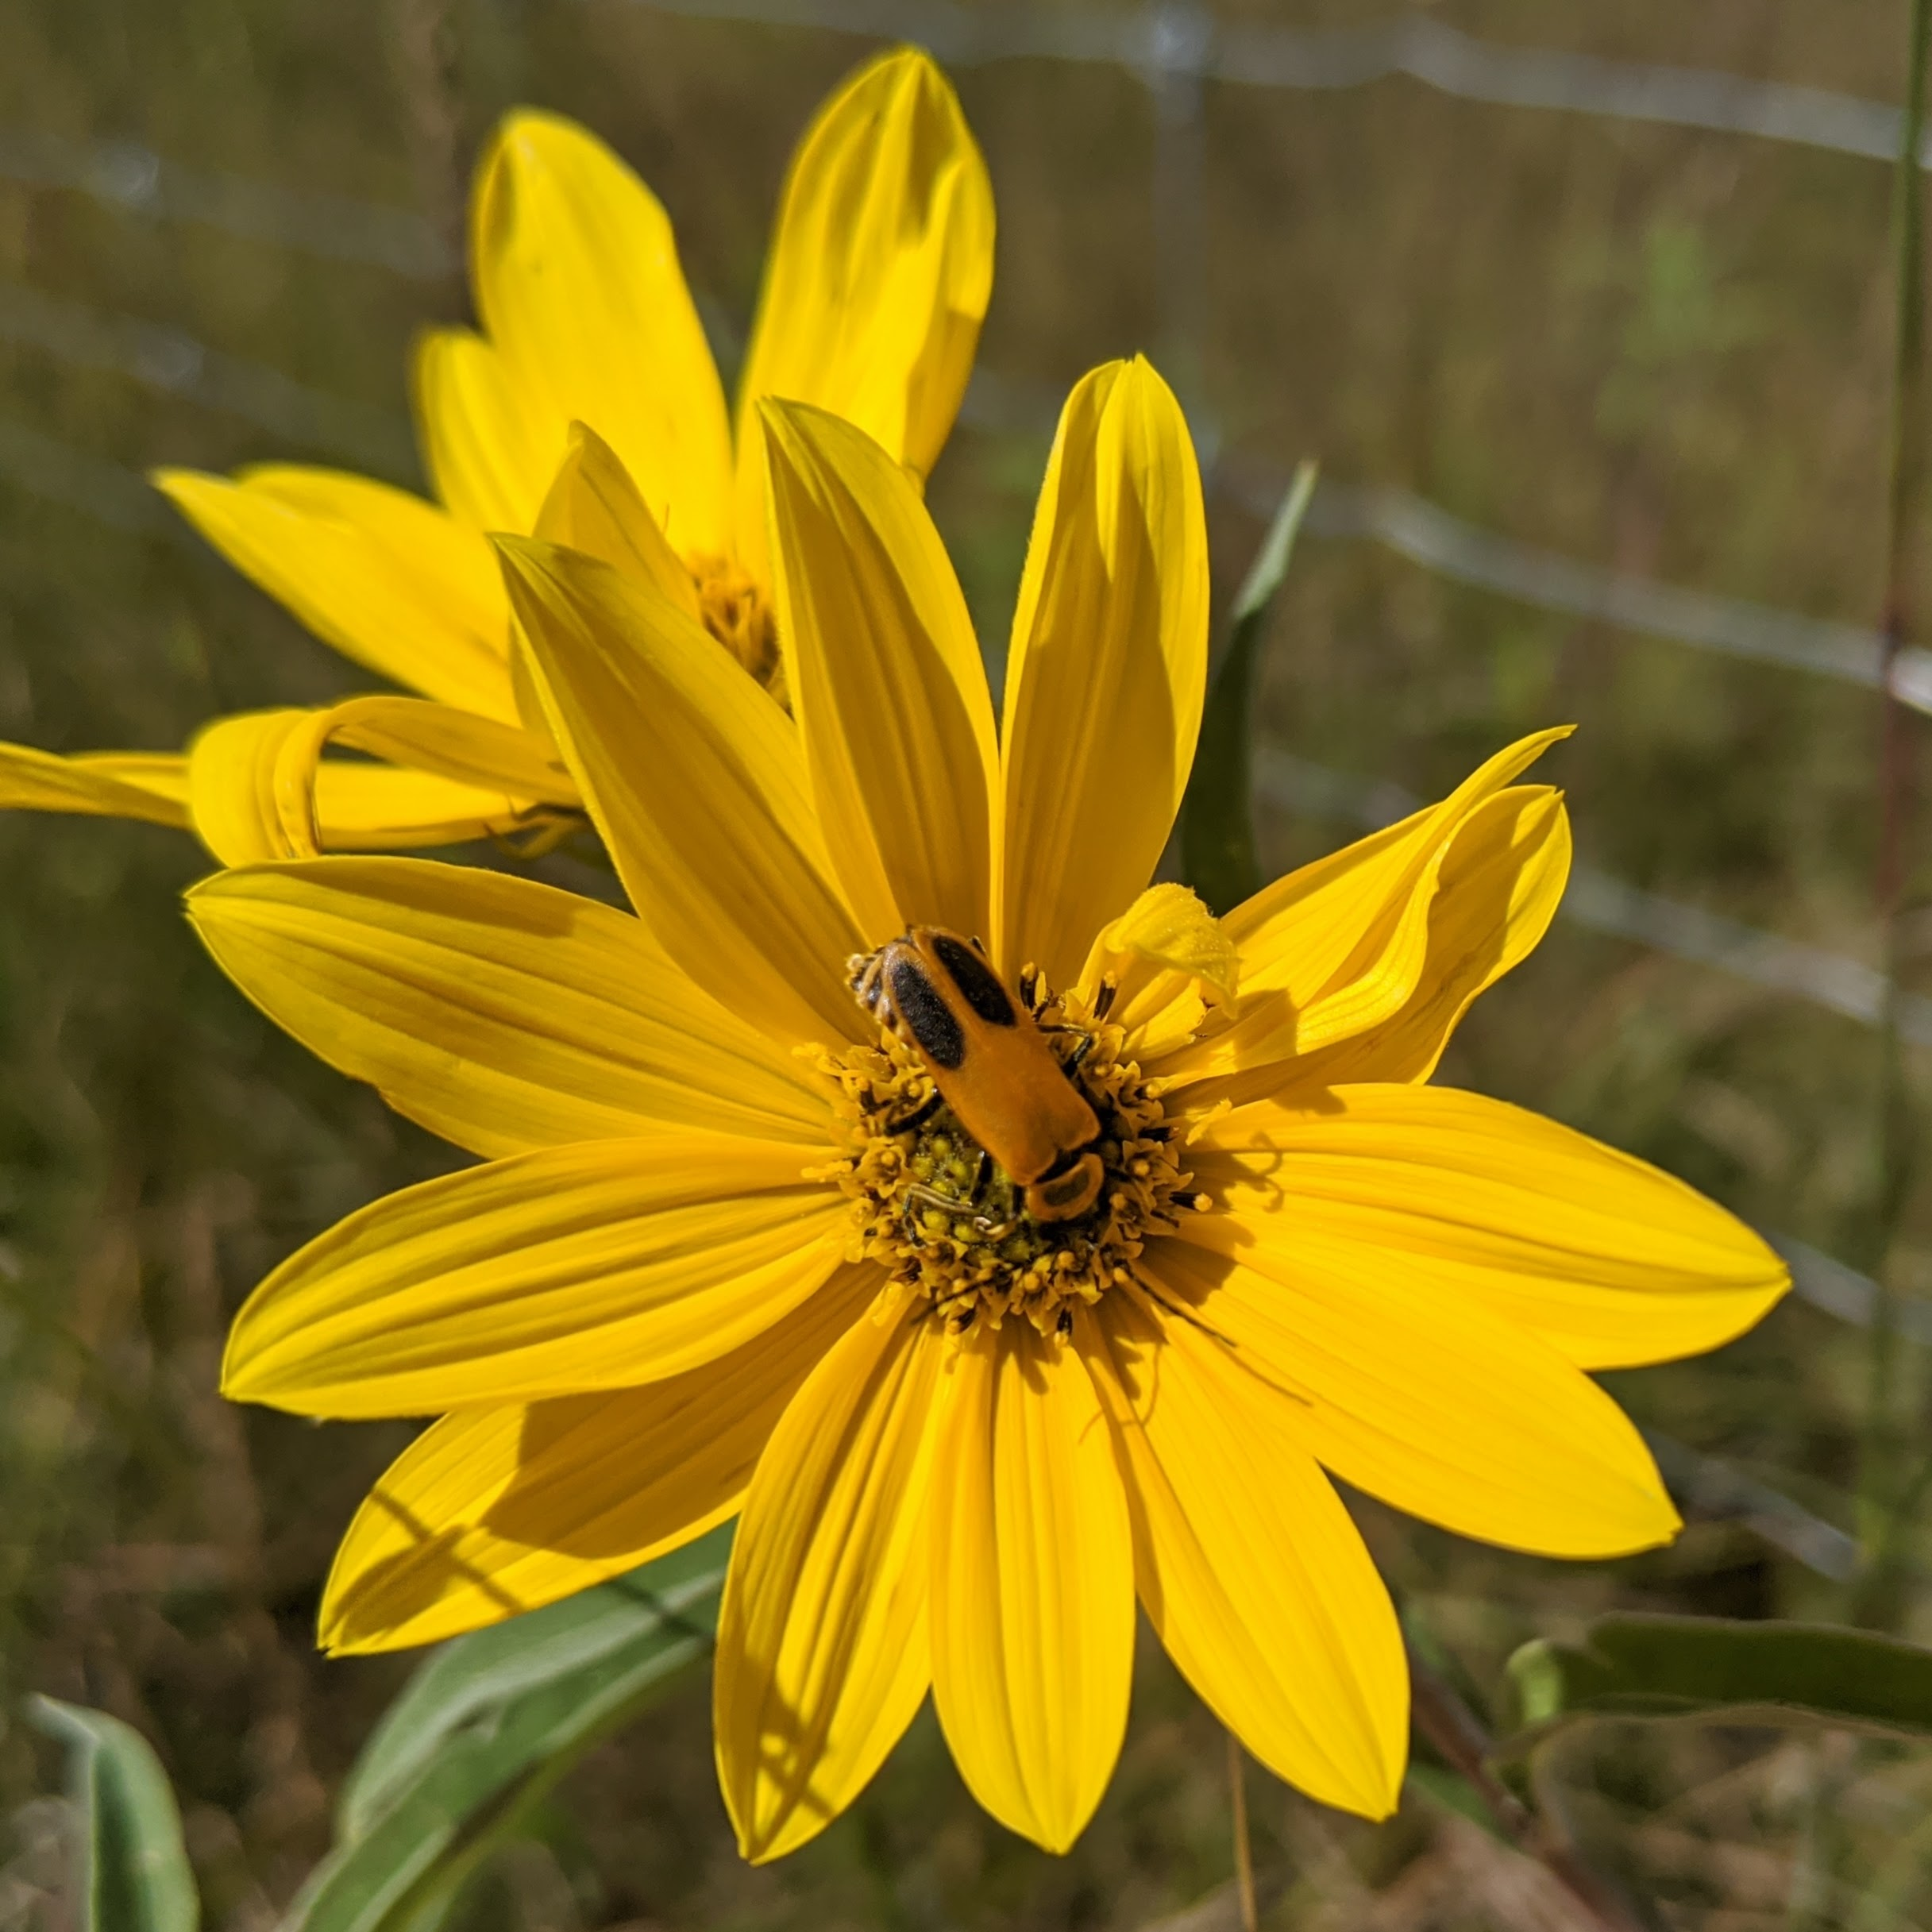 A soldier beetle on the center of a yellow daisy-like flower.